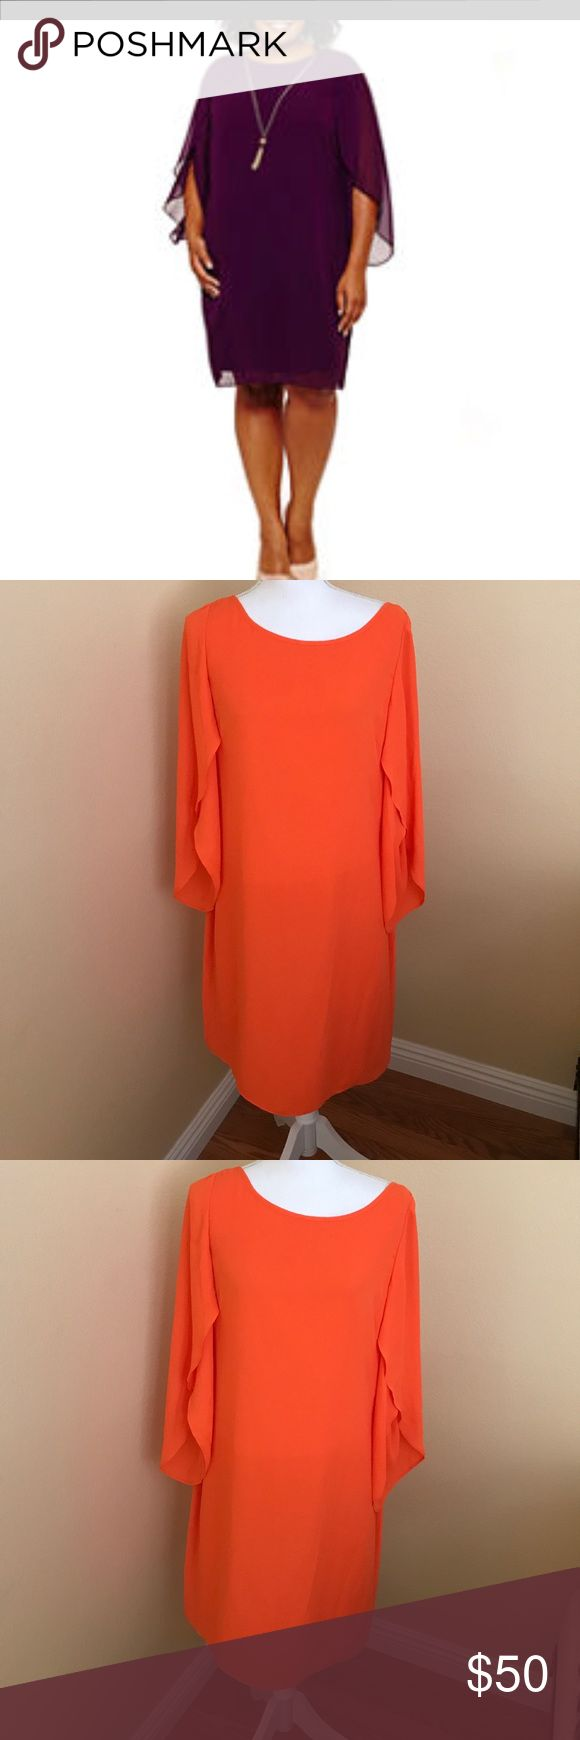 🍁🍁 London Times very cute dress.🍁🍁🍁 Very pretty orange 3/4 Sleeve dress. This dress is perfect to ware to dinner or church. London Times Dresses Midi